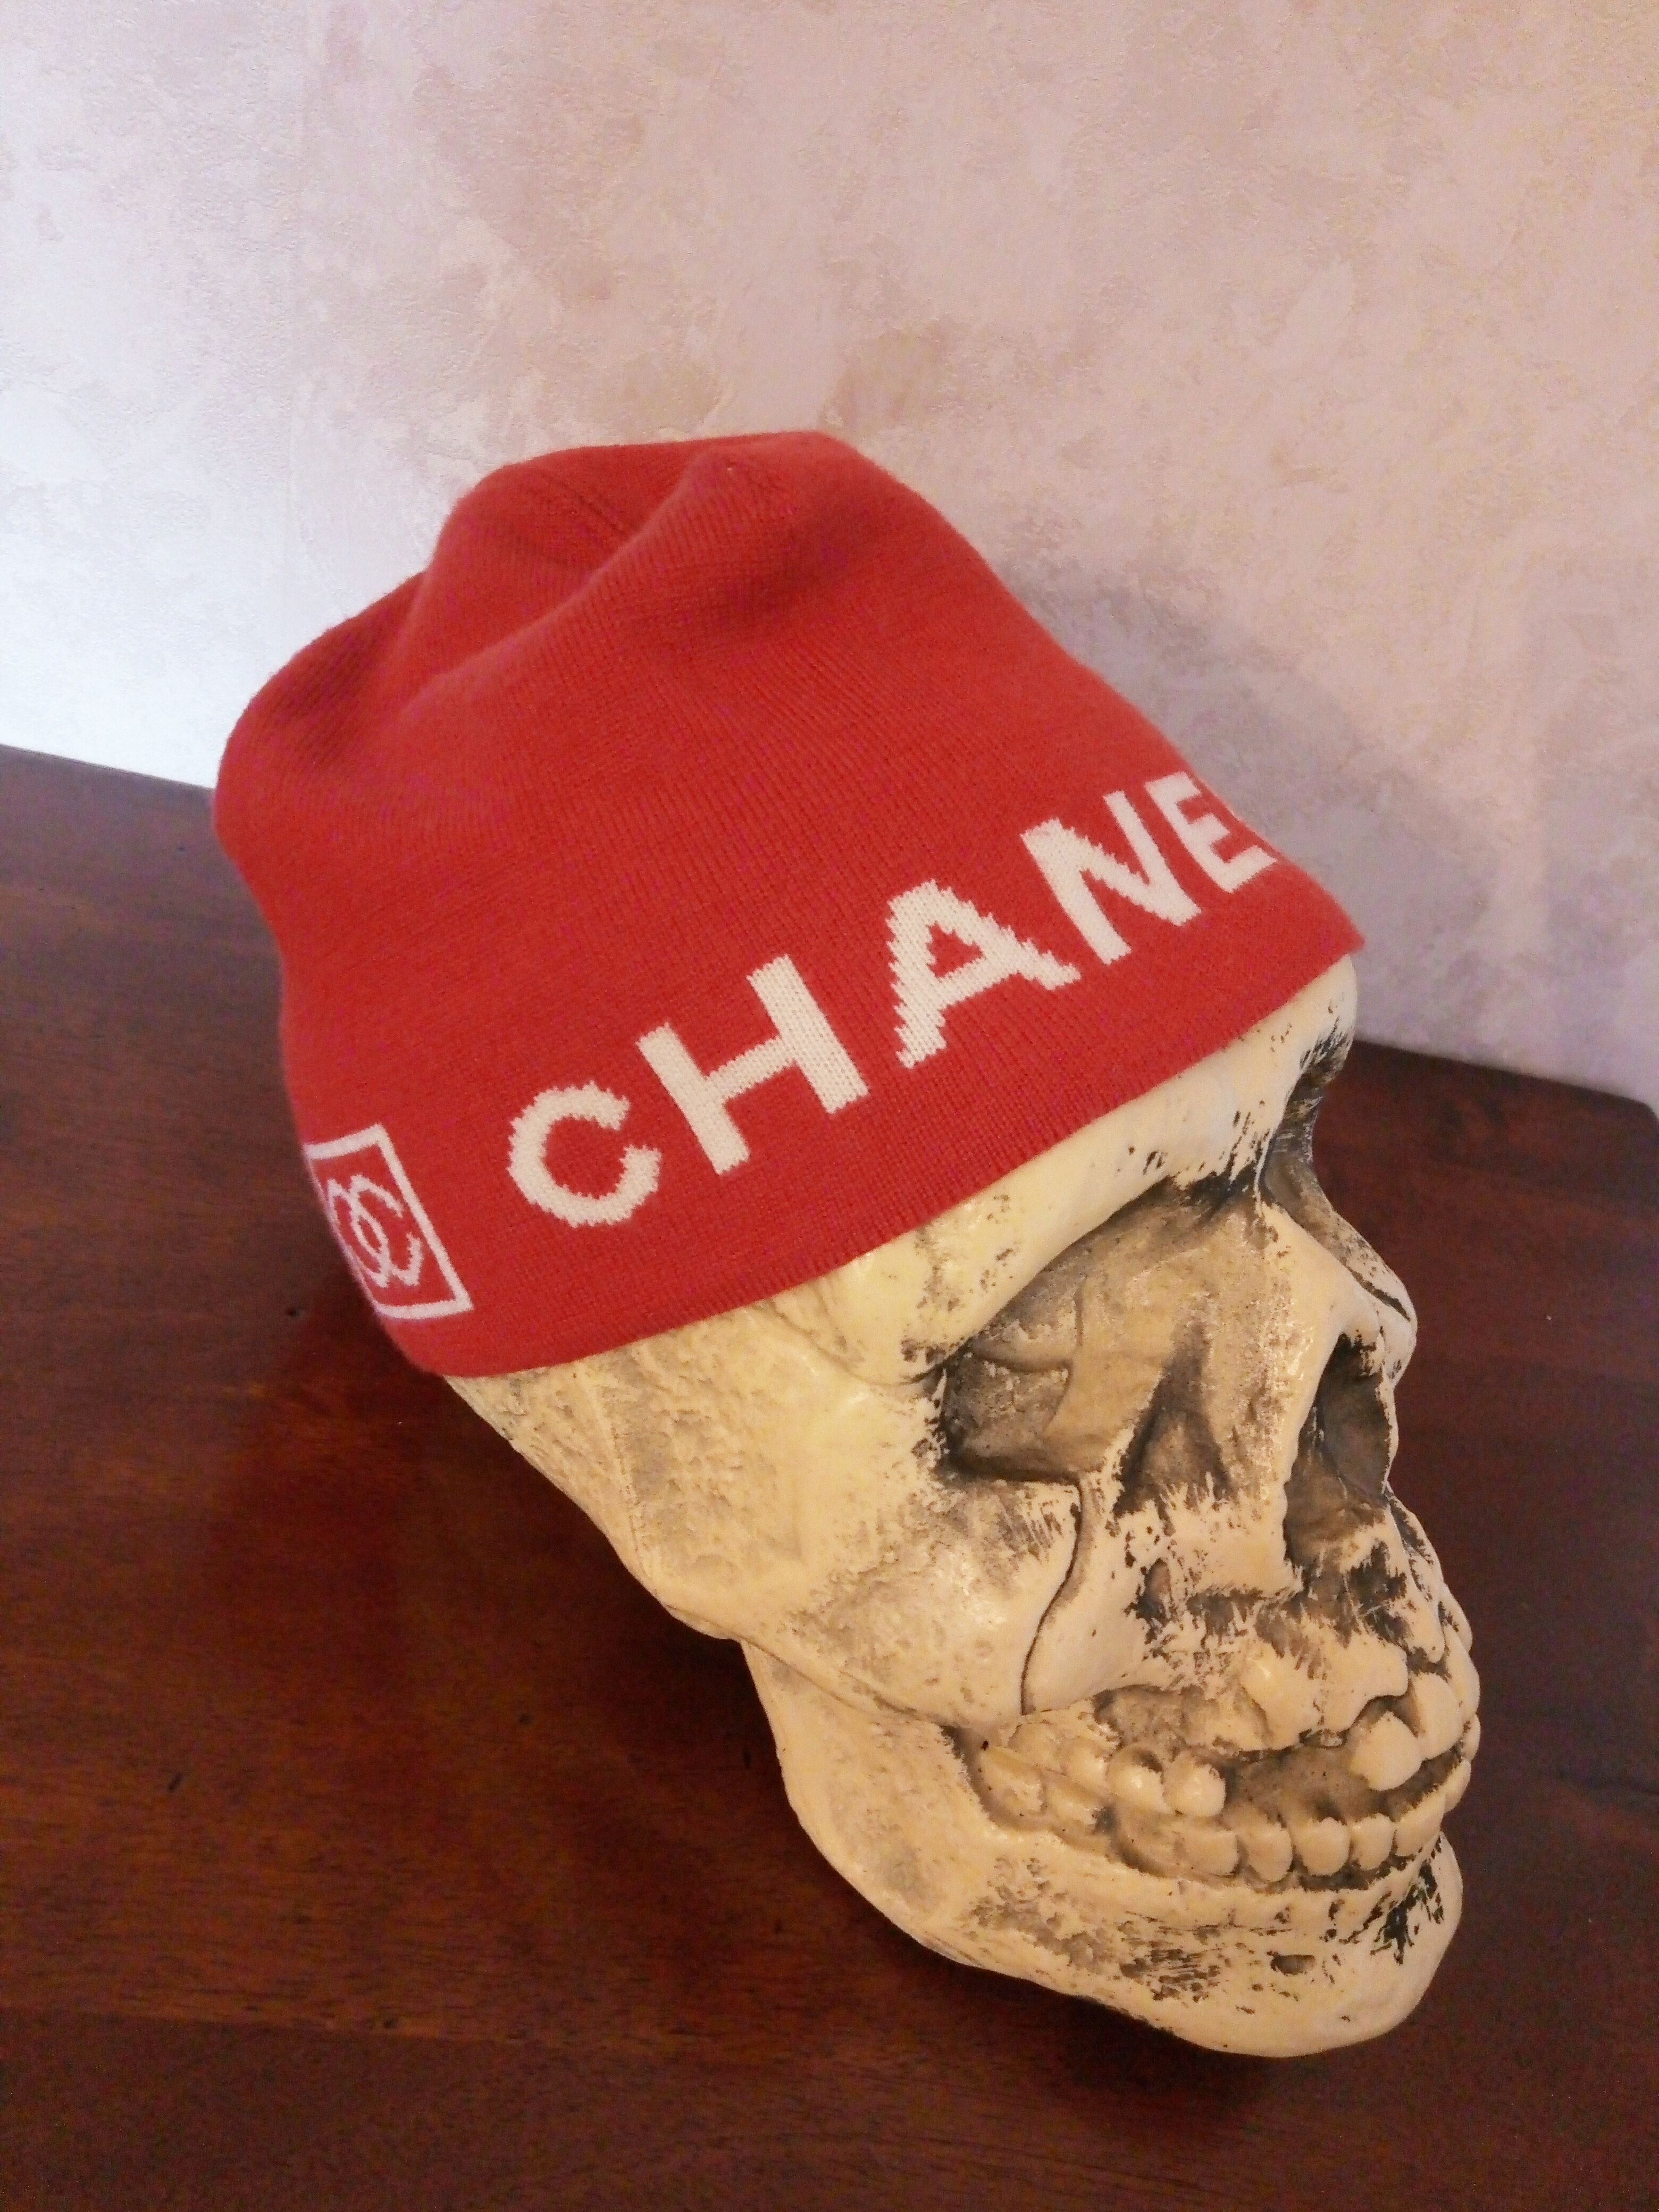 Chanel CHANEL Red and White Beanie Box Logo Monogram Hat Cap ... f95d2df2135